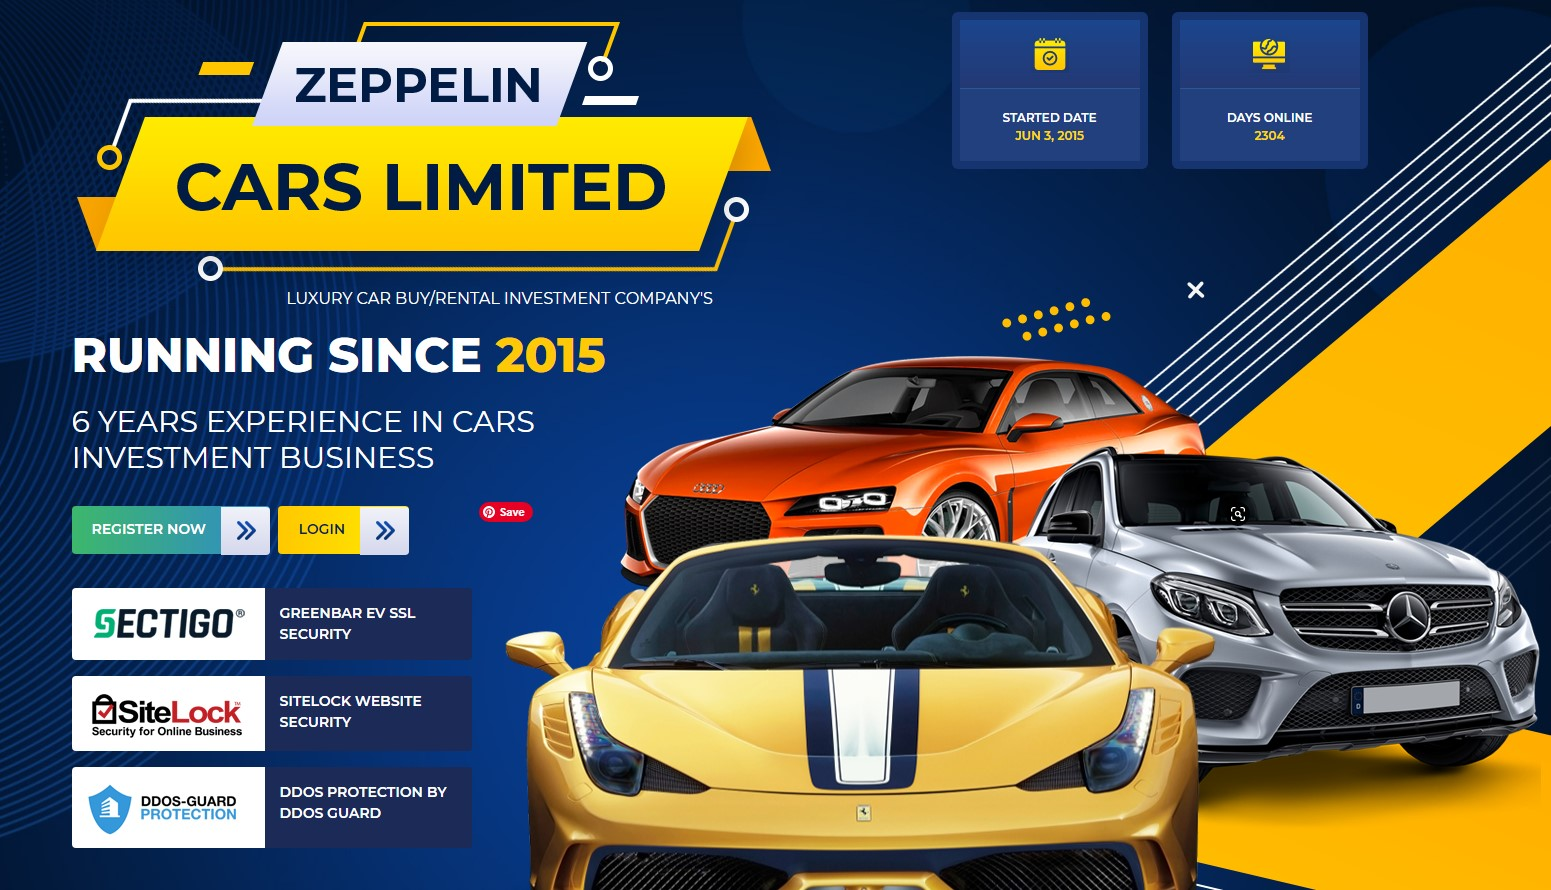 Zeppelin Cars Limited scam